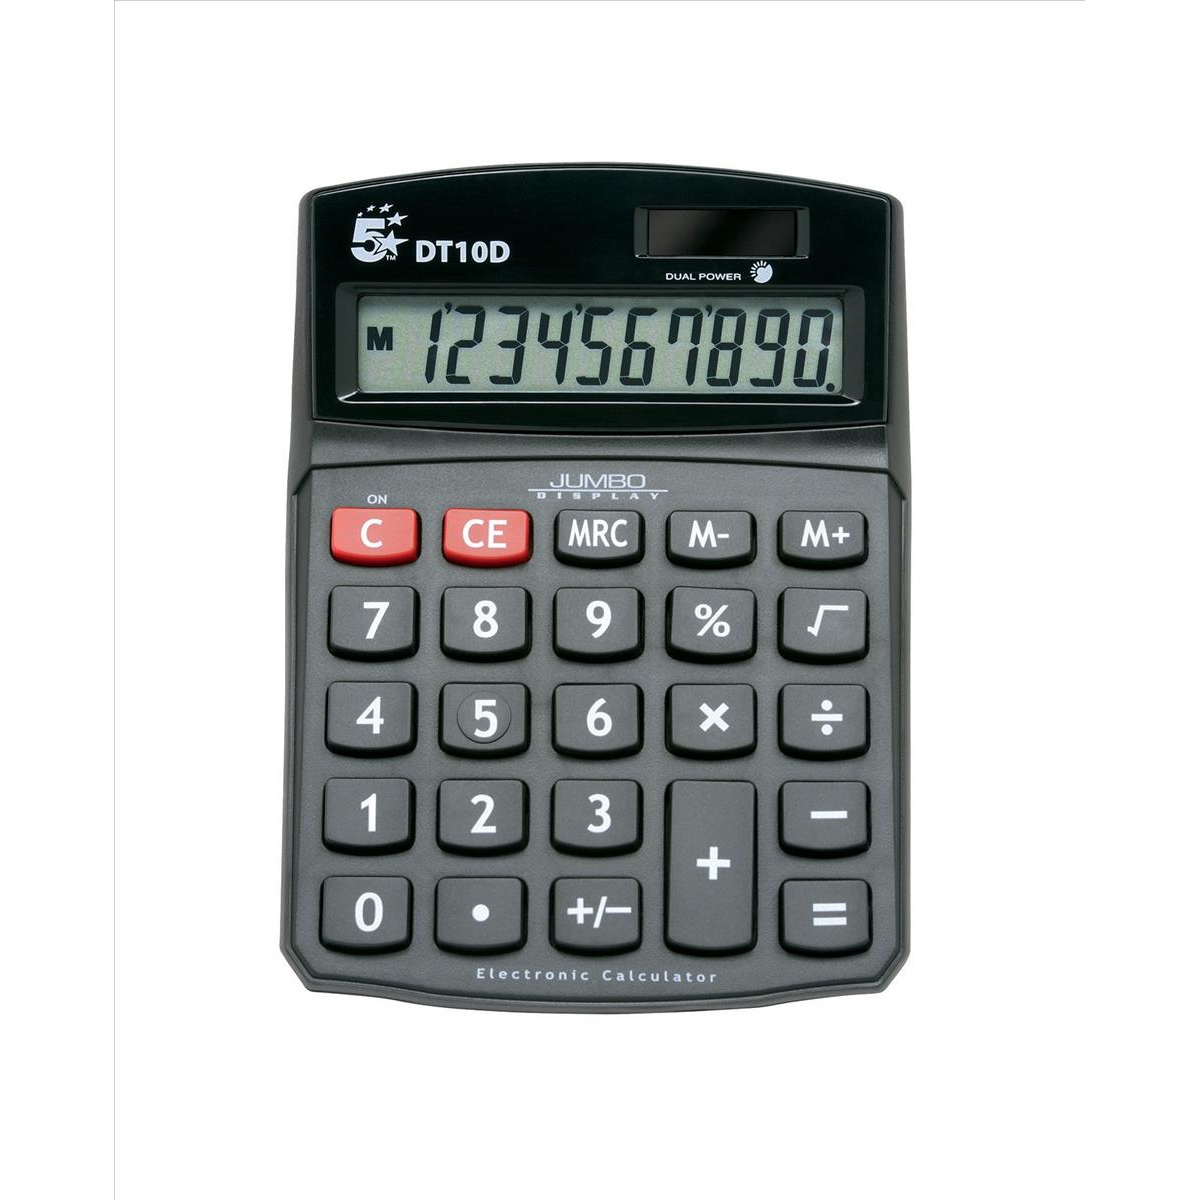 Desktop Calculator 5 Star Office Desktop Calculator 10 Digit Display 3 Key Memory Battery/Solar Power 94x32x124mm Black